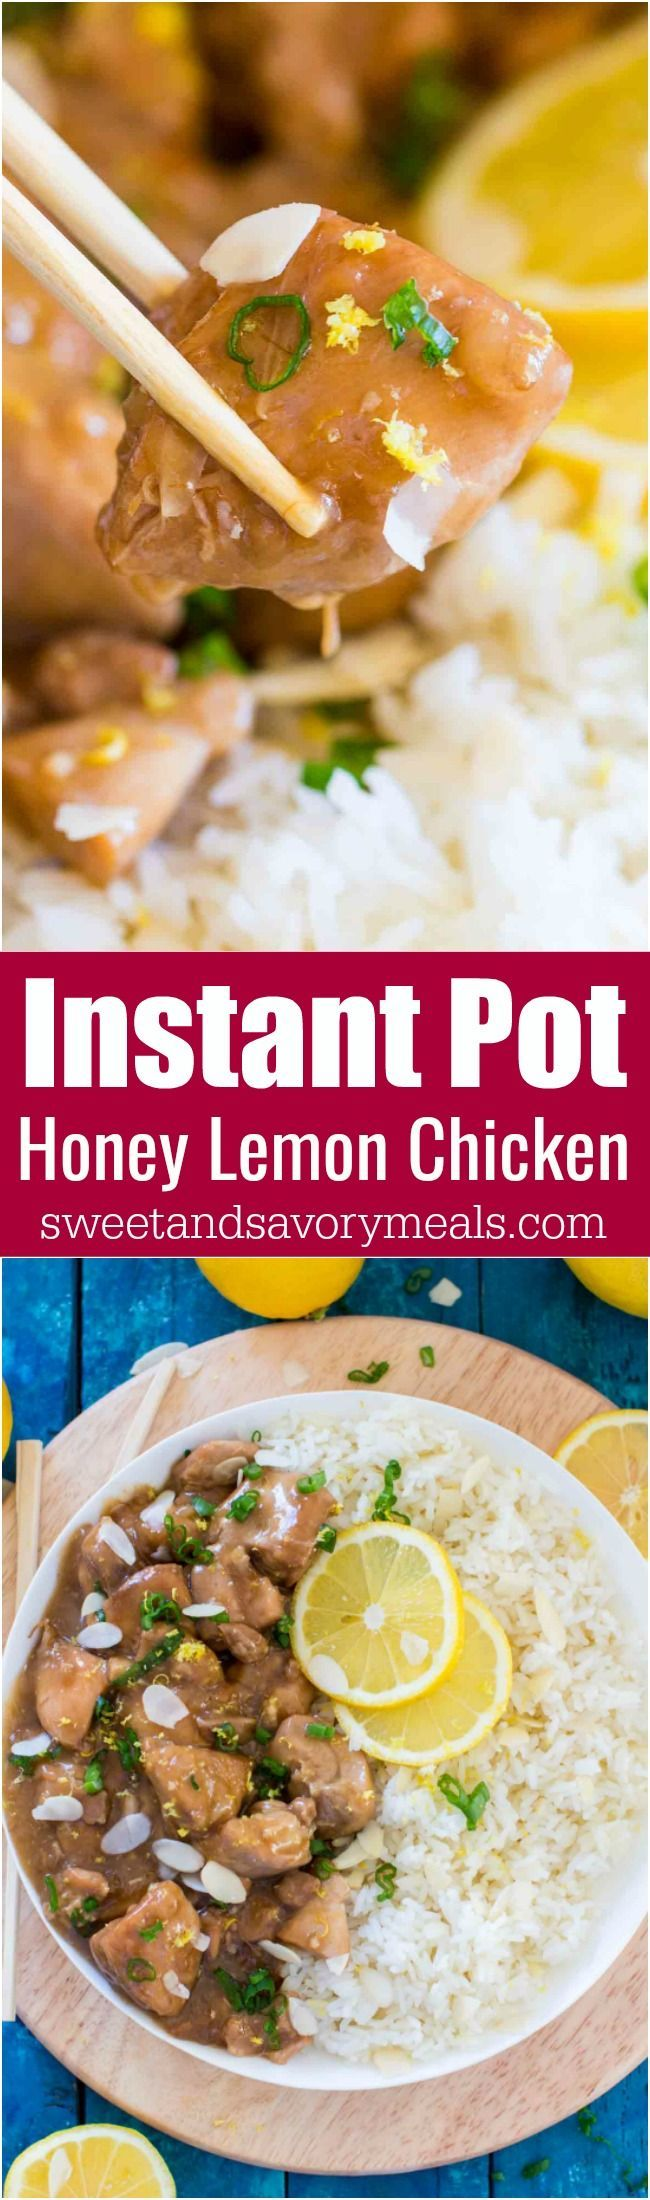 Instant Pot Honey Lemon Chicken is a healthy and delicious meal, that is packed with amazing flavors and is ready in just 30 minutes. #instantpot #chicken #pressurecooker